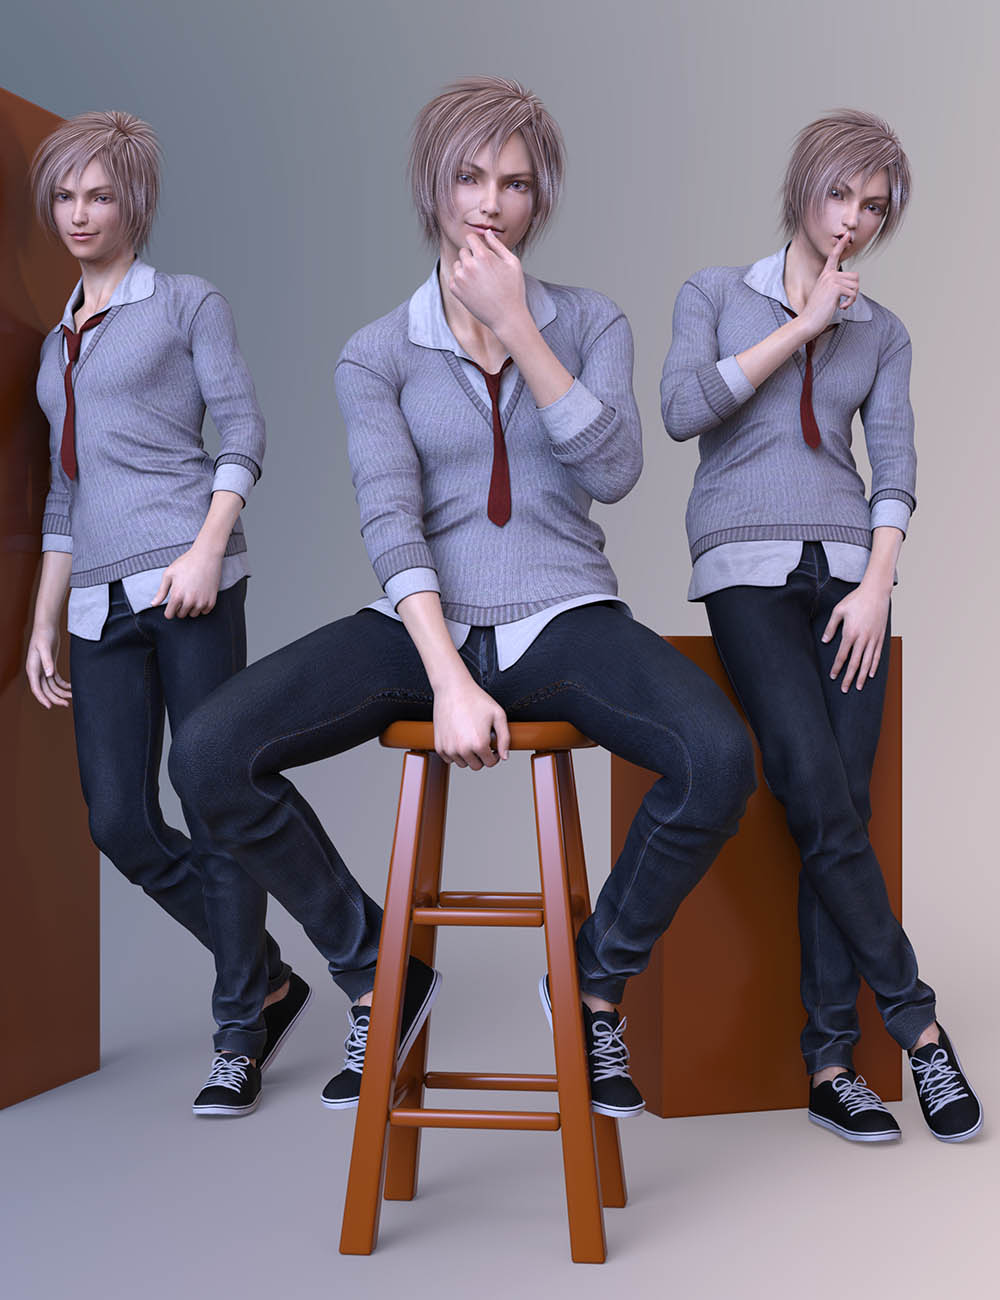 CDI Poses for Yuzuru 8 and Genesis 8 Male by: Capsces Digital Ink, 3D Models by Daz 3D